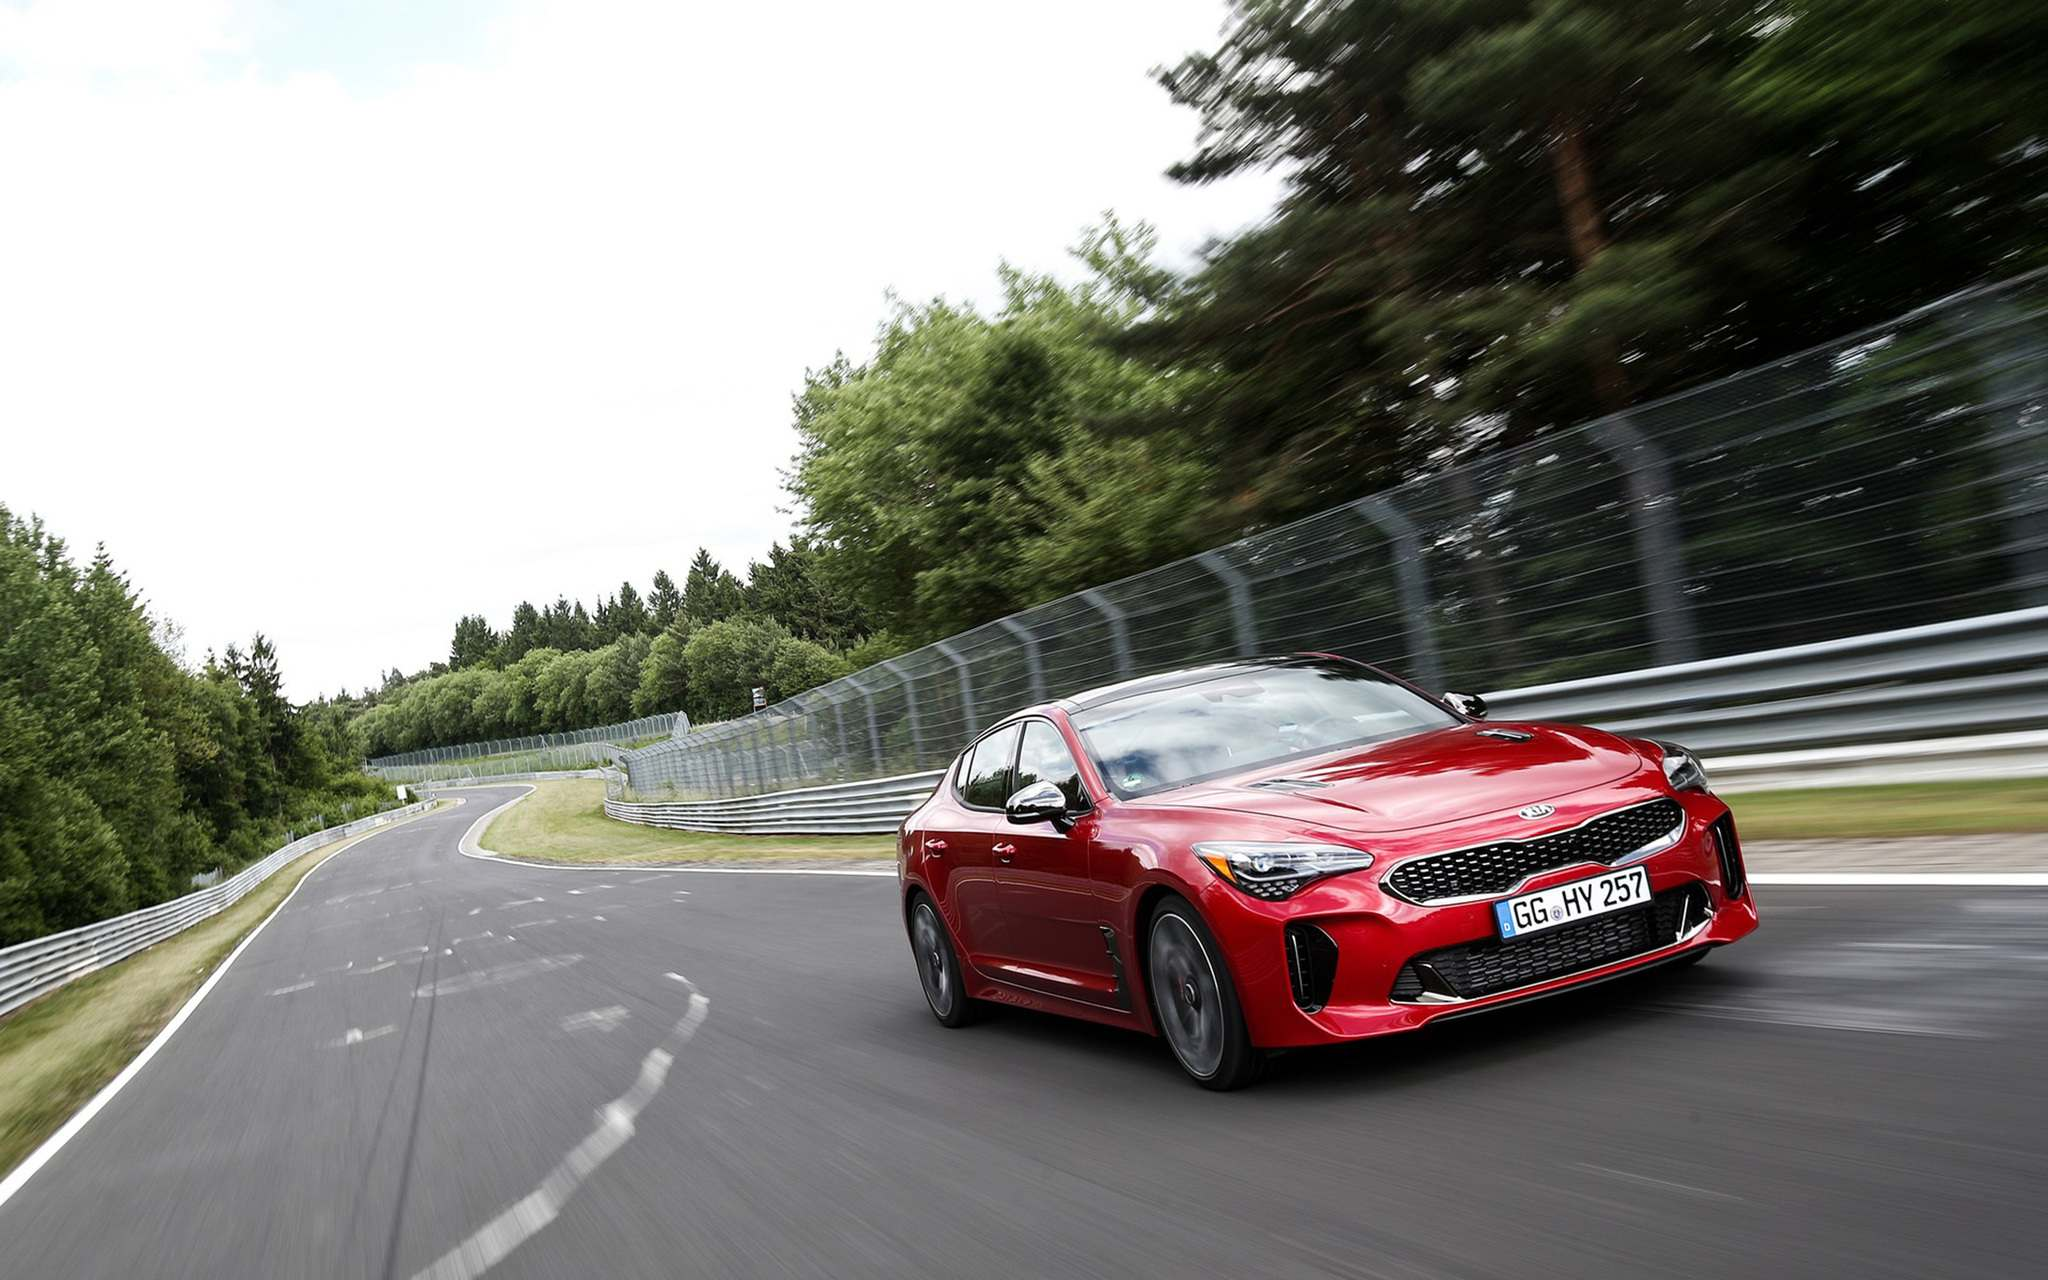 Kia Kia's Stinger 2.0L GT-Line, with its turbocharged 2.0-litre four-cylinder engine, will soon be available on the Canadian market.